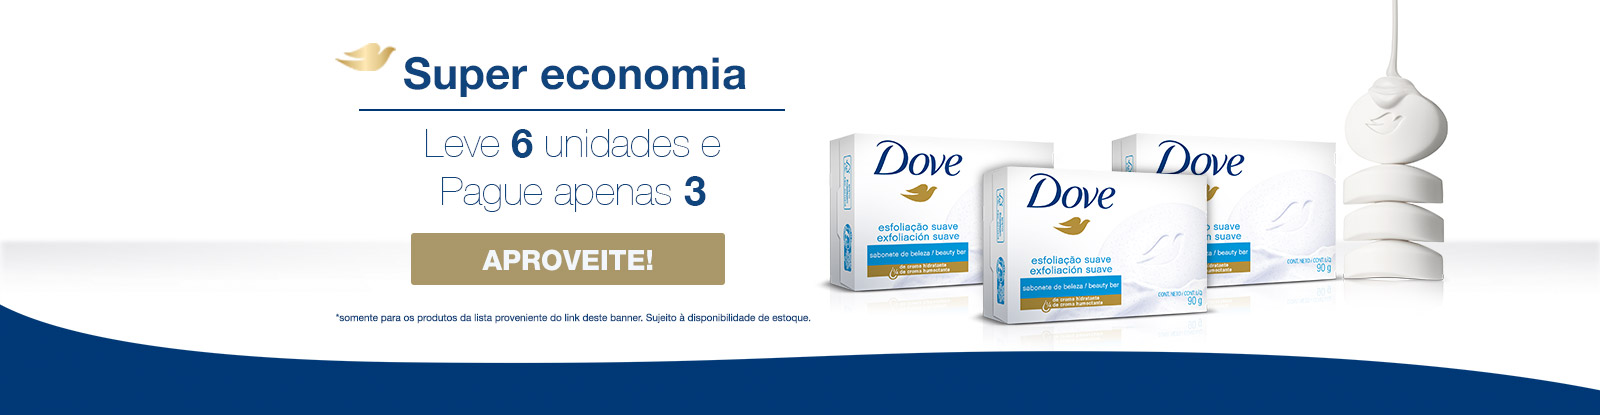 Sabonete Barra Dove